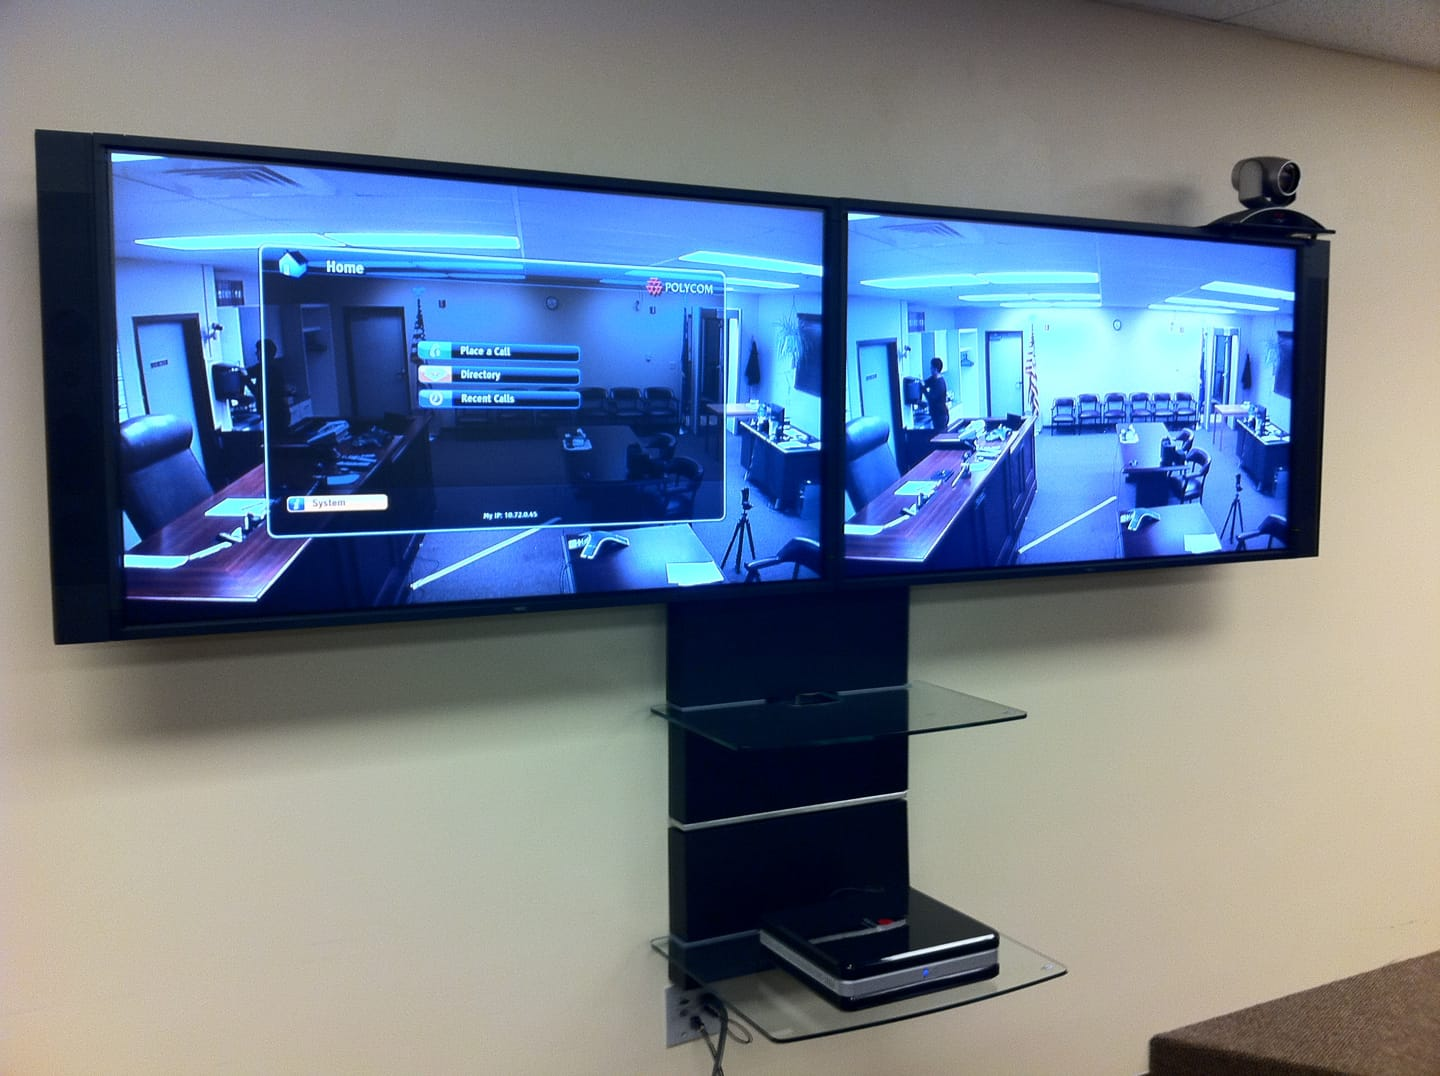 A Polycom VTC with dual 50 NEC monitors and a beautiful glass shelf system.